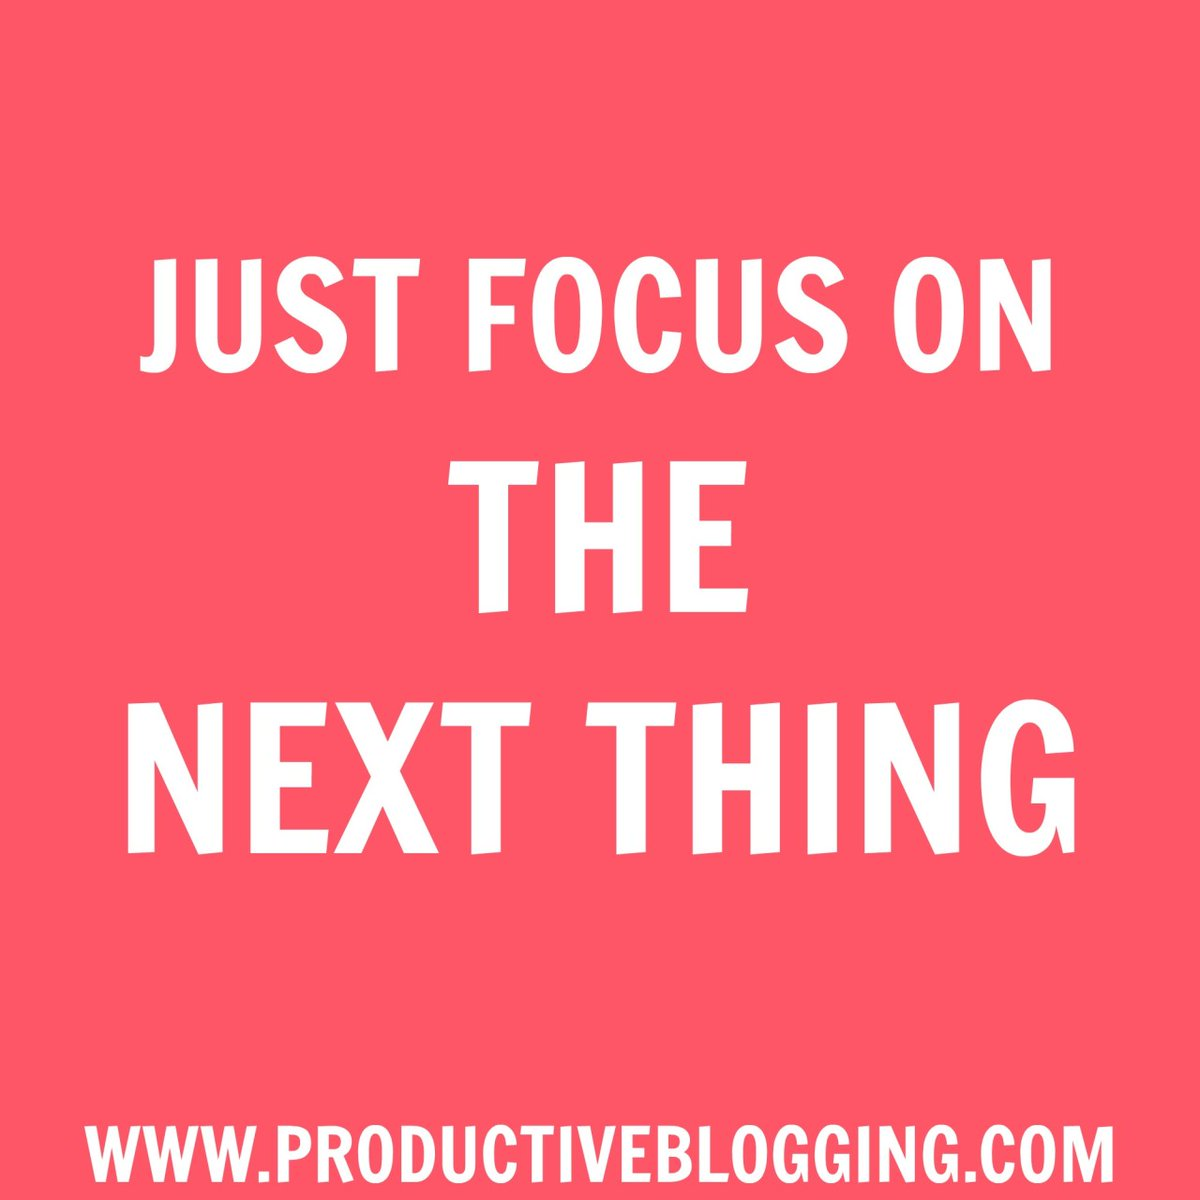 It's so easy to stress and worry about #allthethings  STOP!!!   Write down all the things  Then decide what you actually NEED to do today/this week  Then just focus on #thenextthing  #productivityhacks #productivitytips #productivityhabits #productiveblogging #mondaymotivation